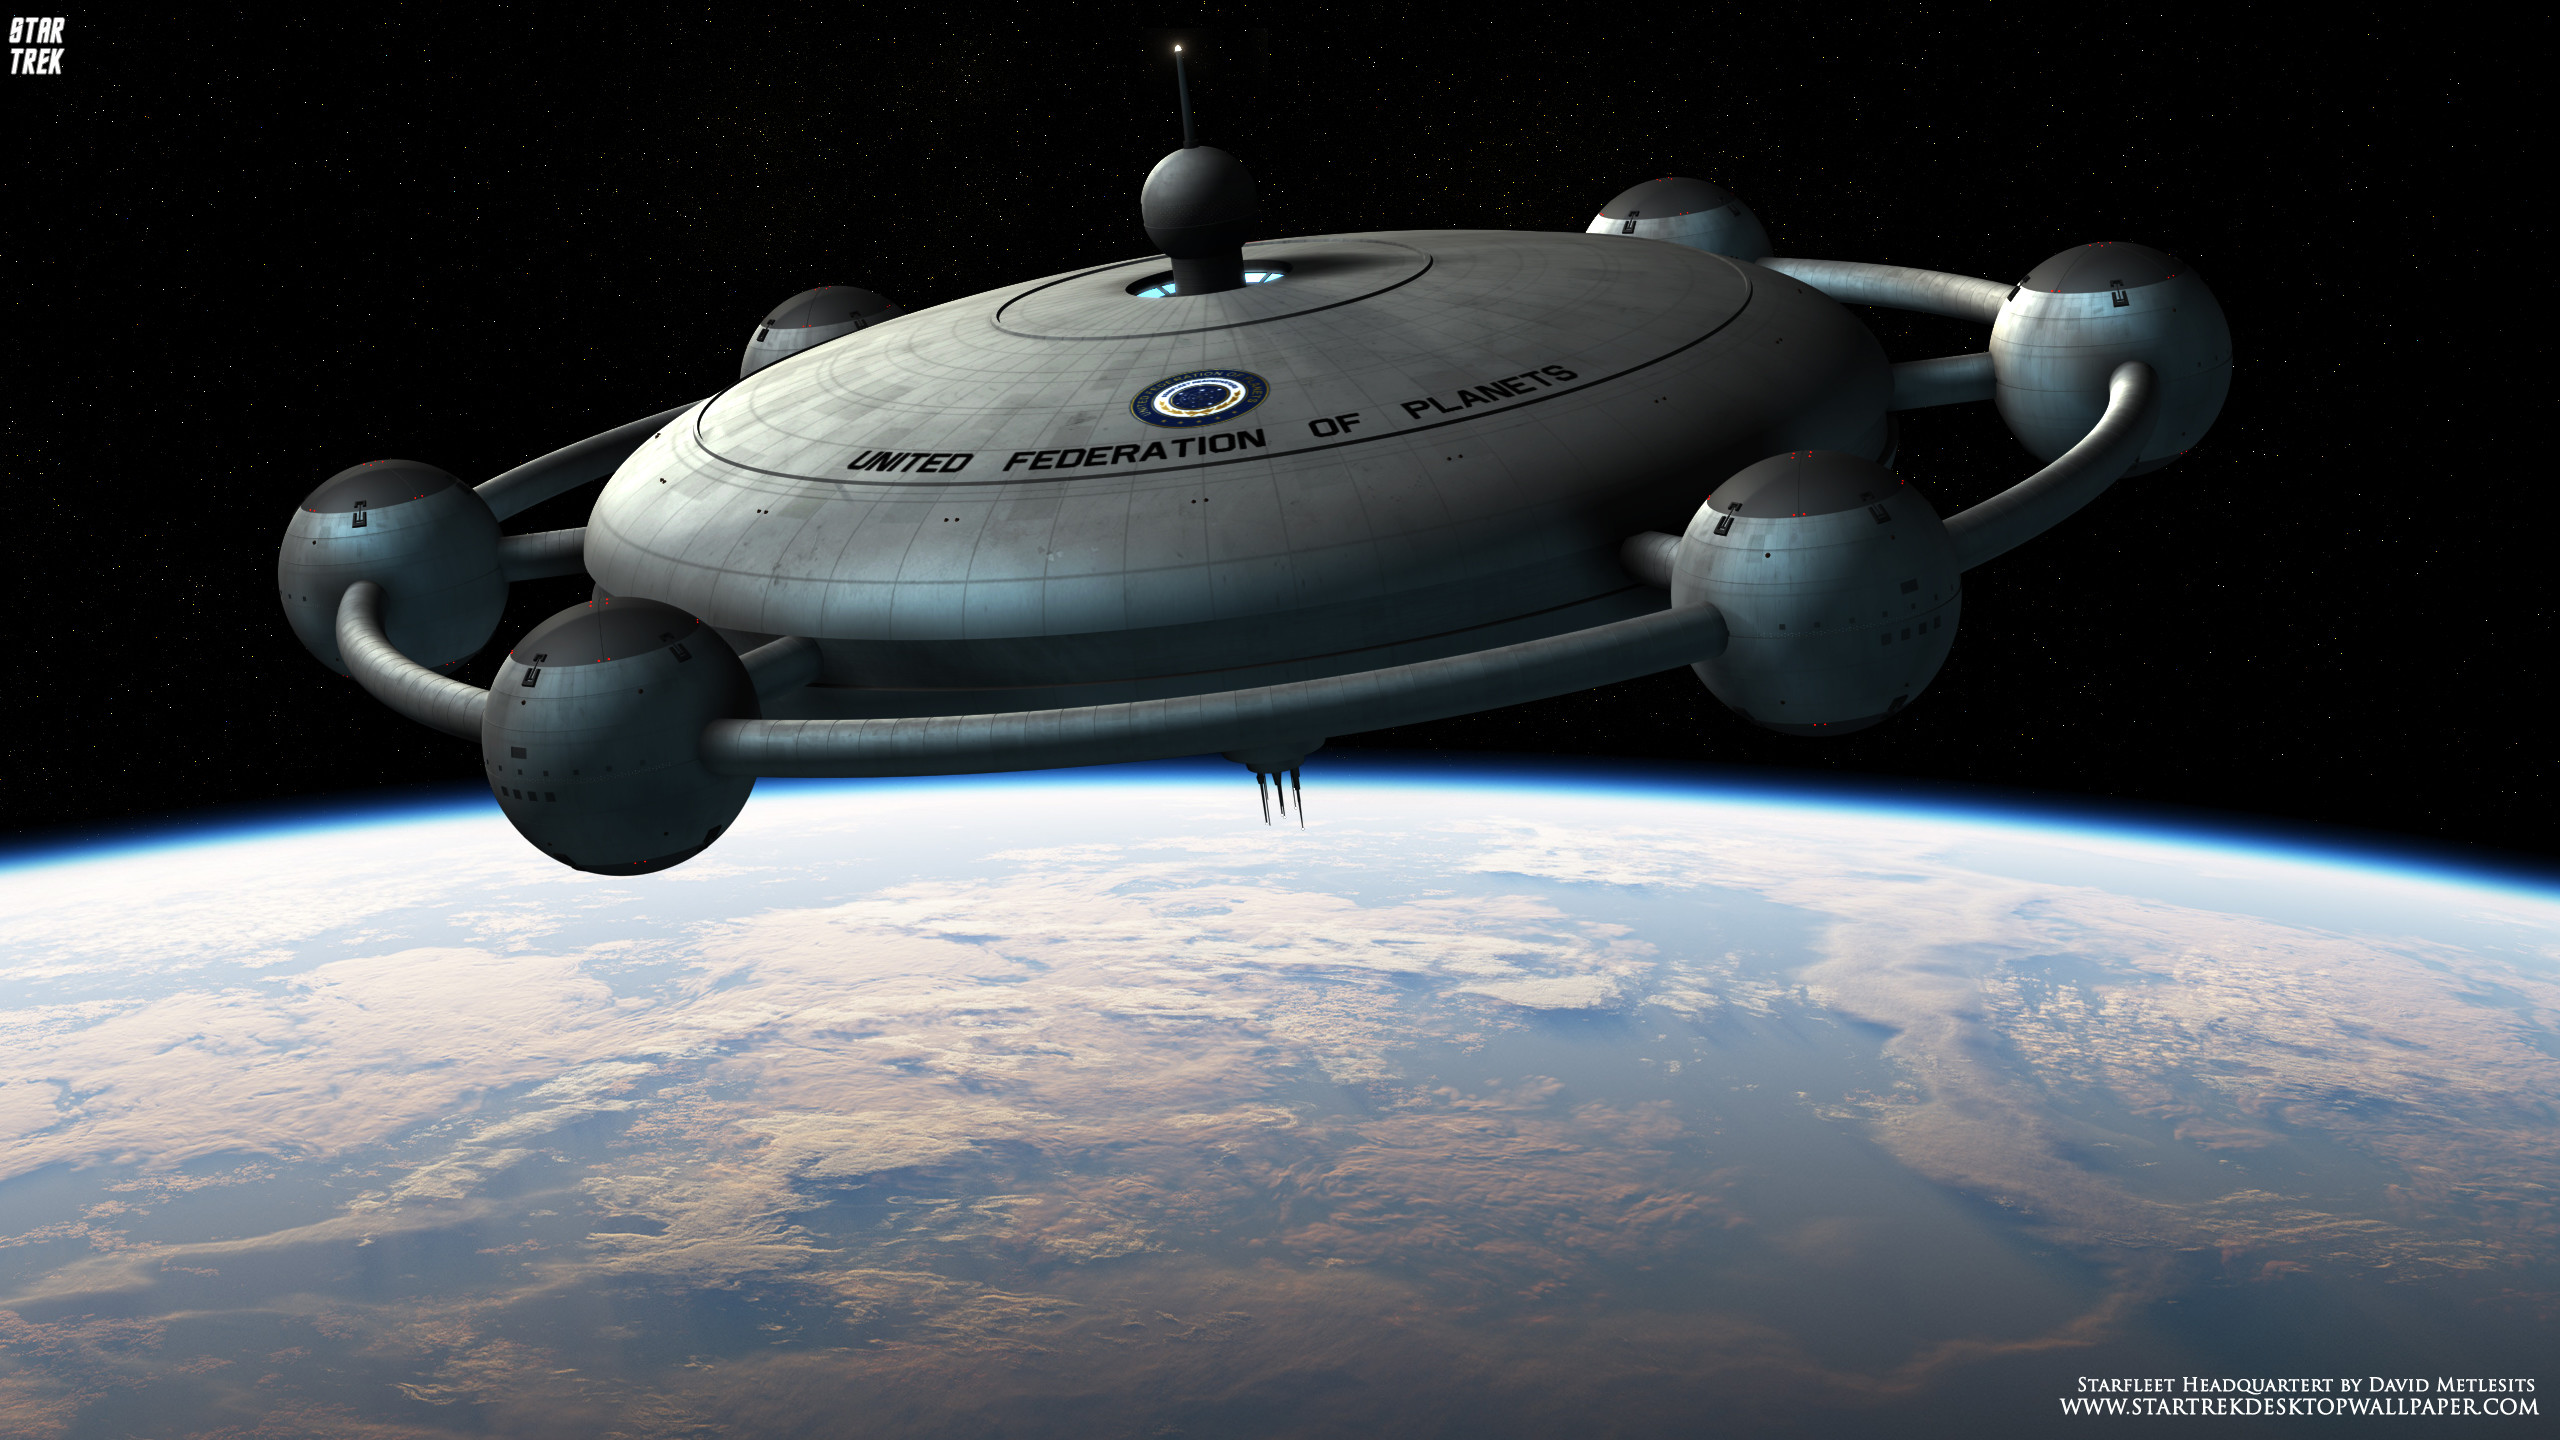 Res: 2560x1440, Star Trek Starfleet Headquarters - free Star Trek computer desktop wallpaper,  pictures, images